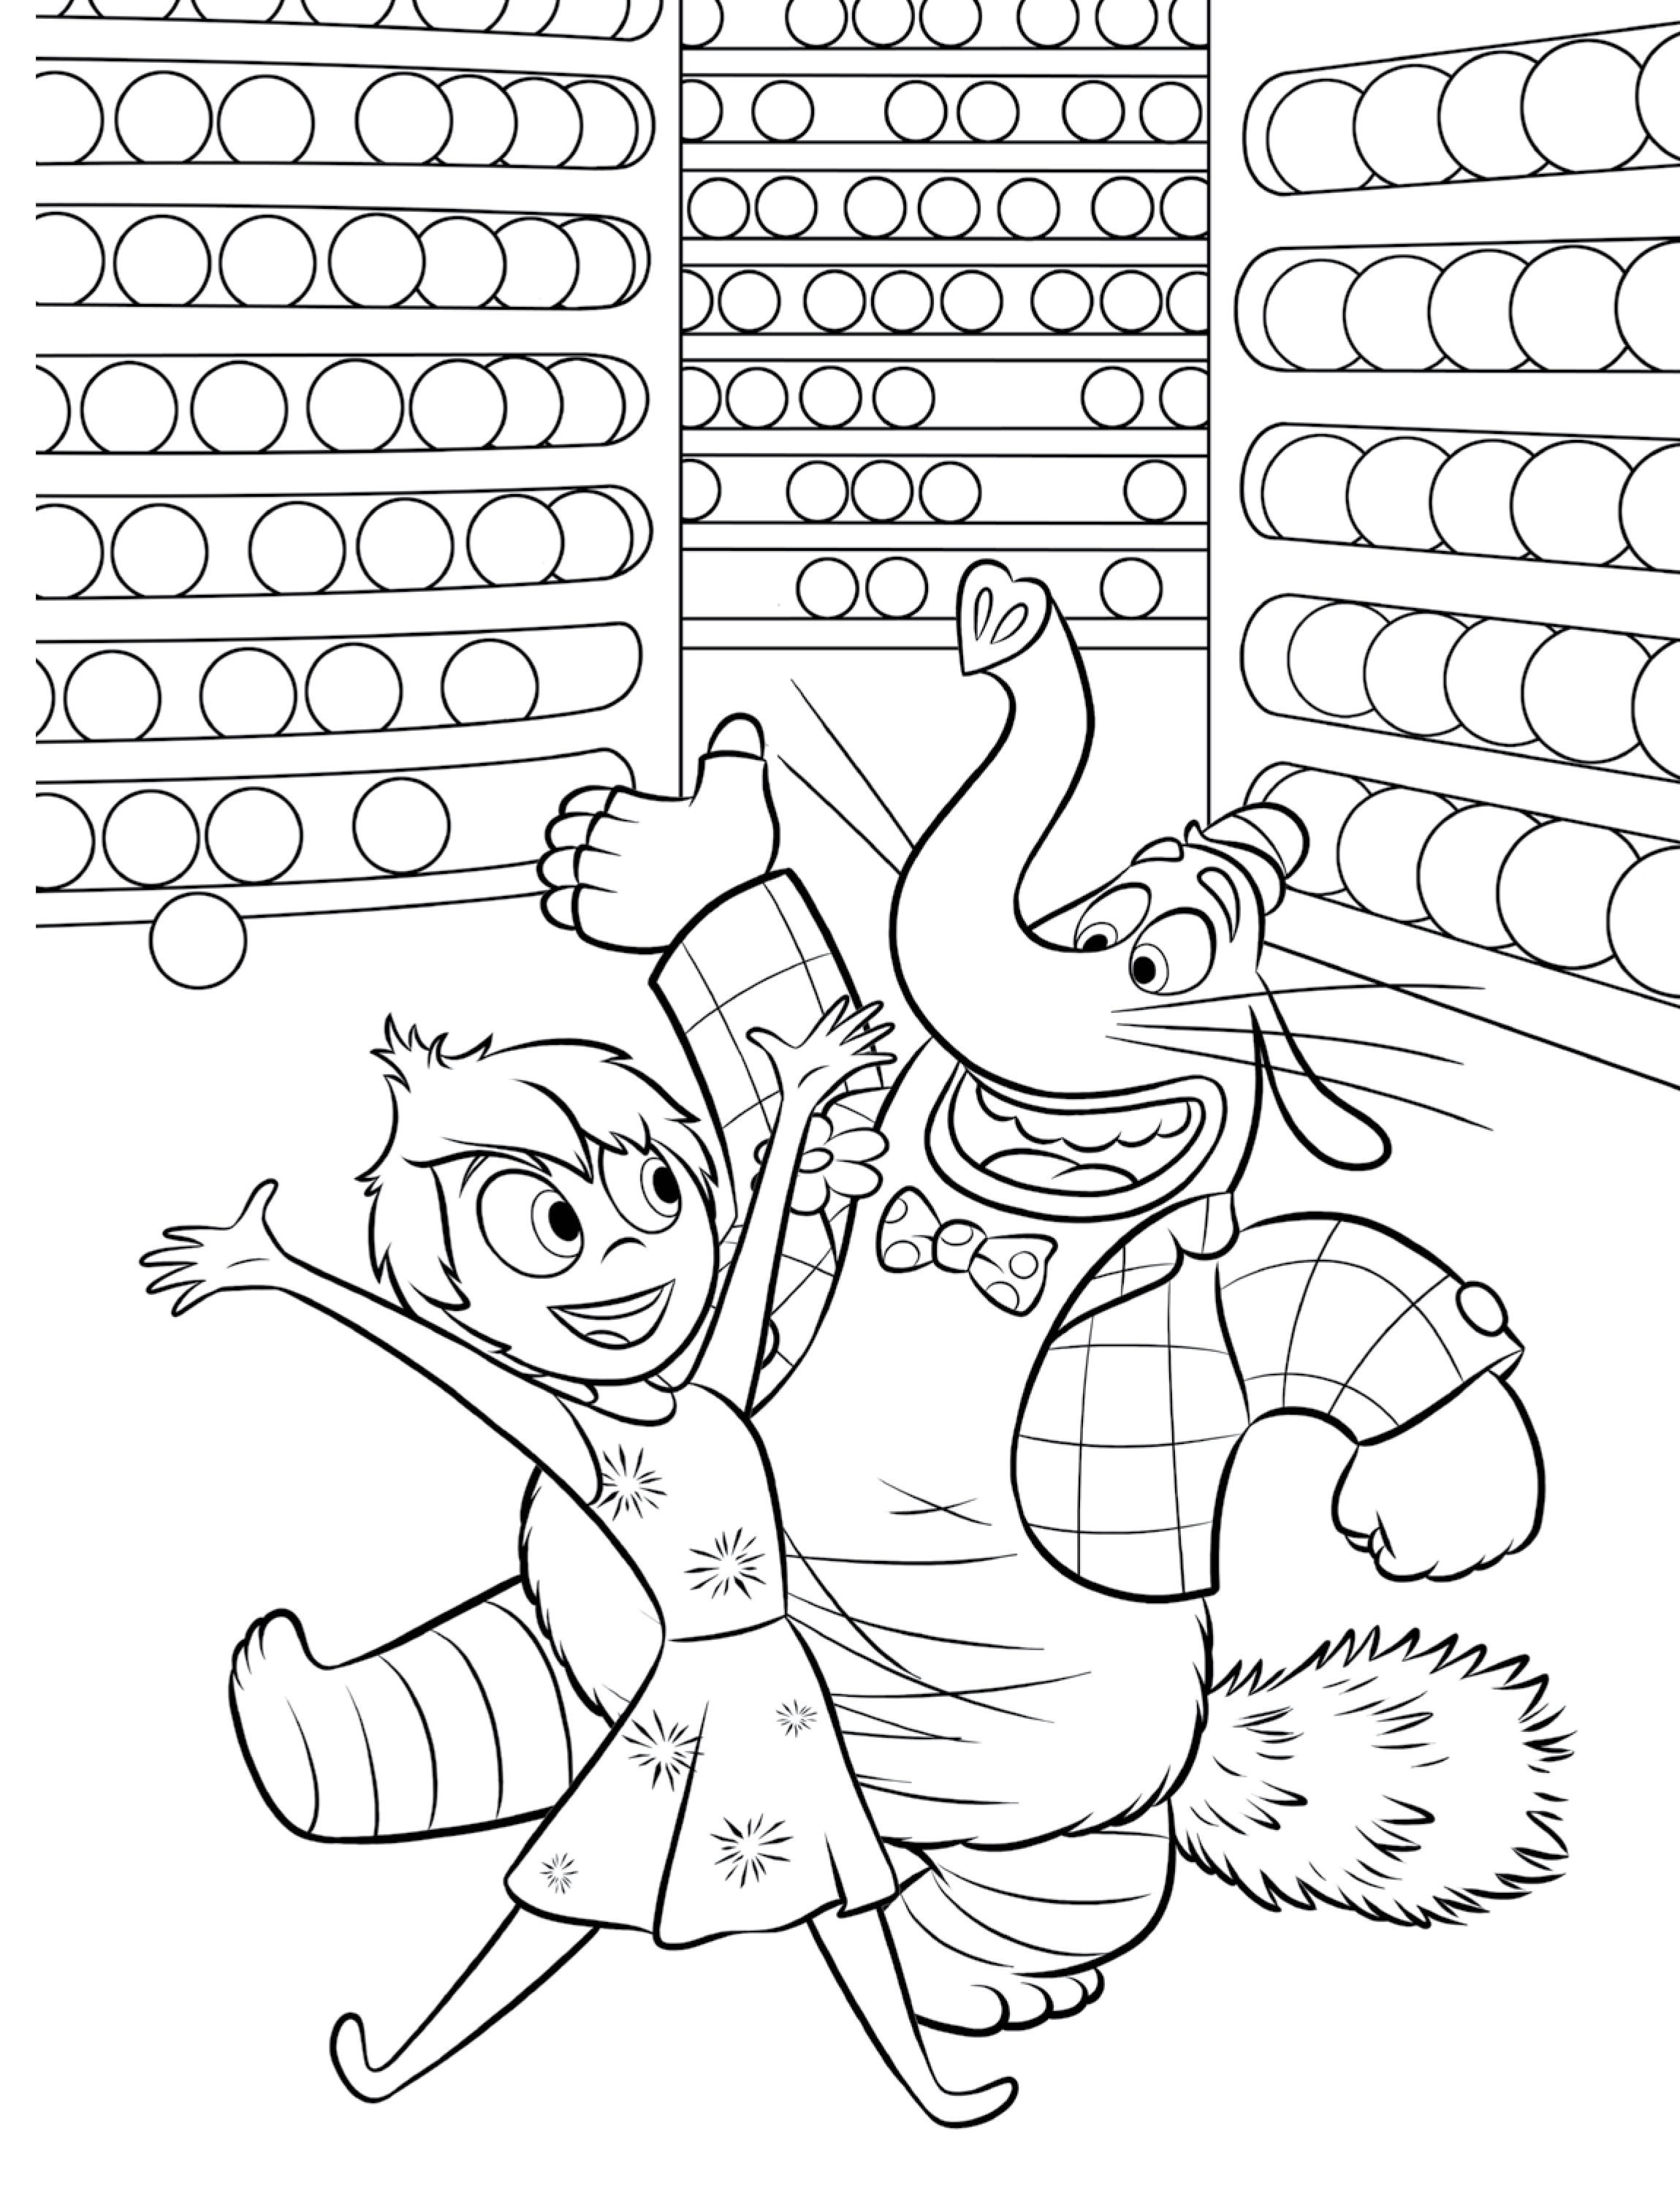 inside out coloring pages free - photo#24